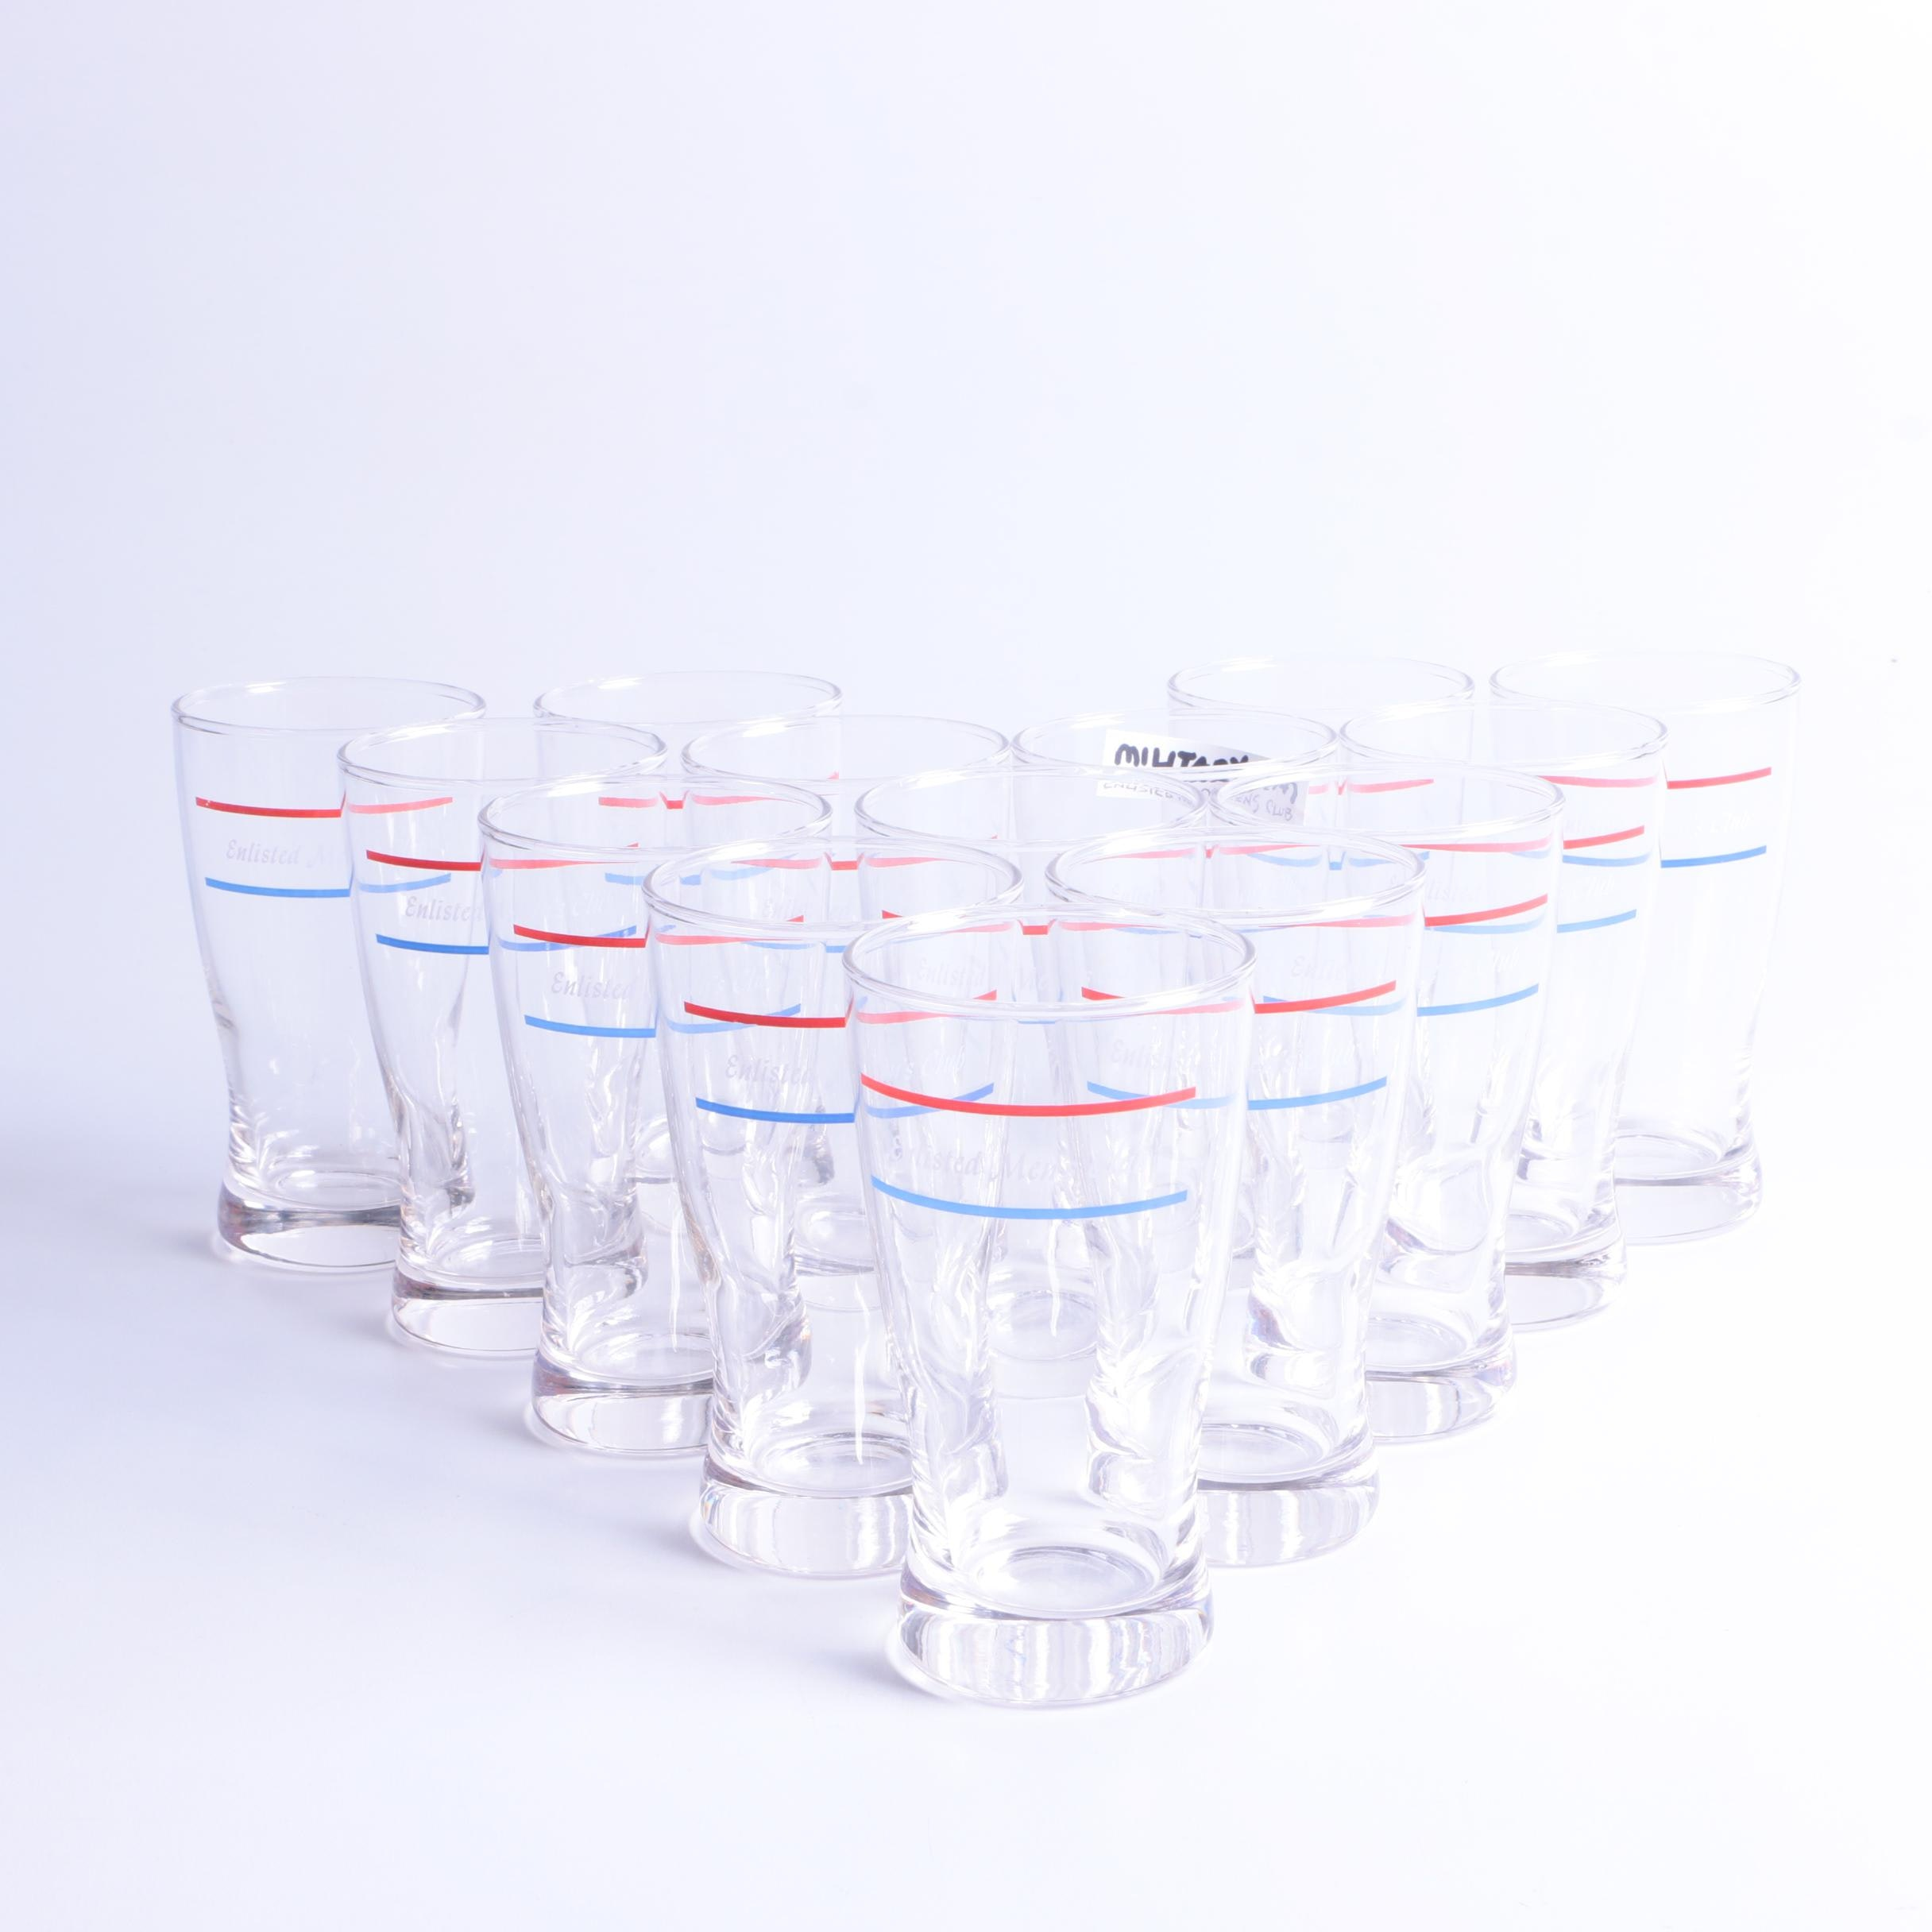 Enlisted Men's Club Military Etched Glassware